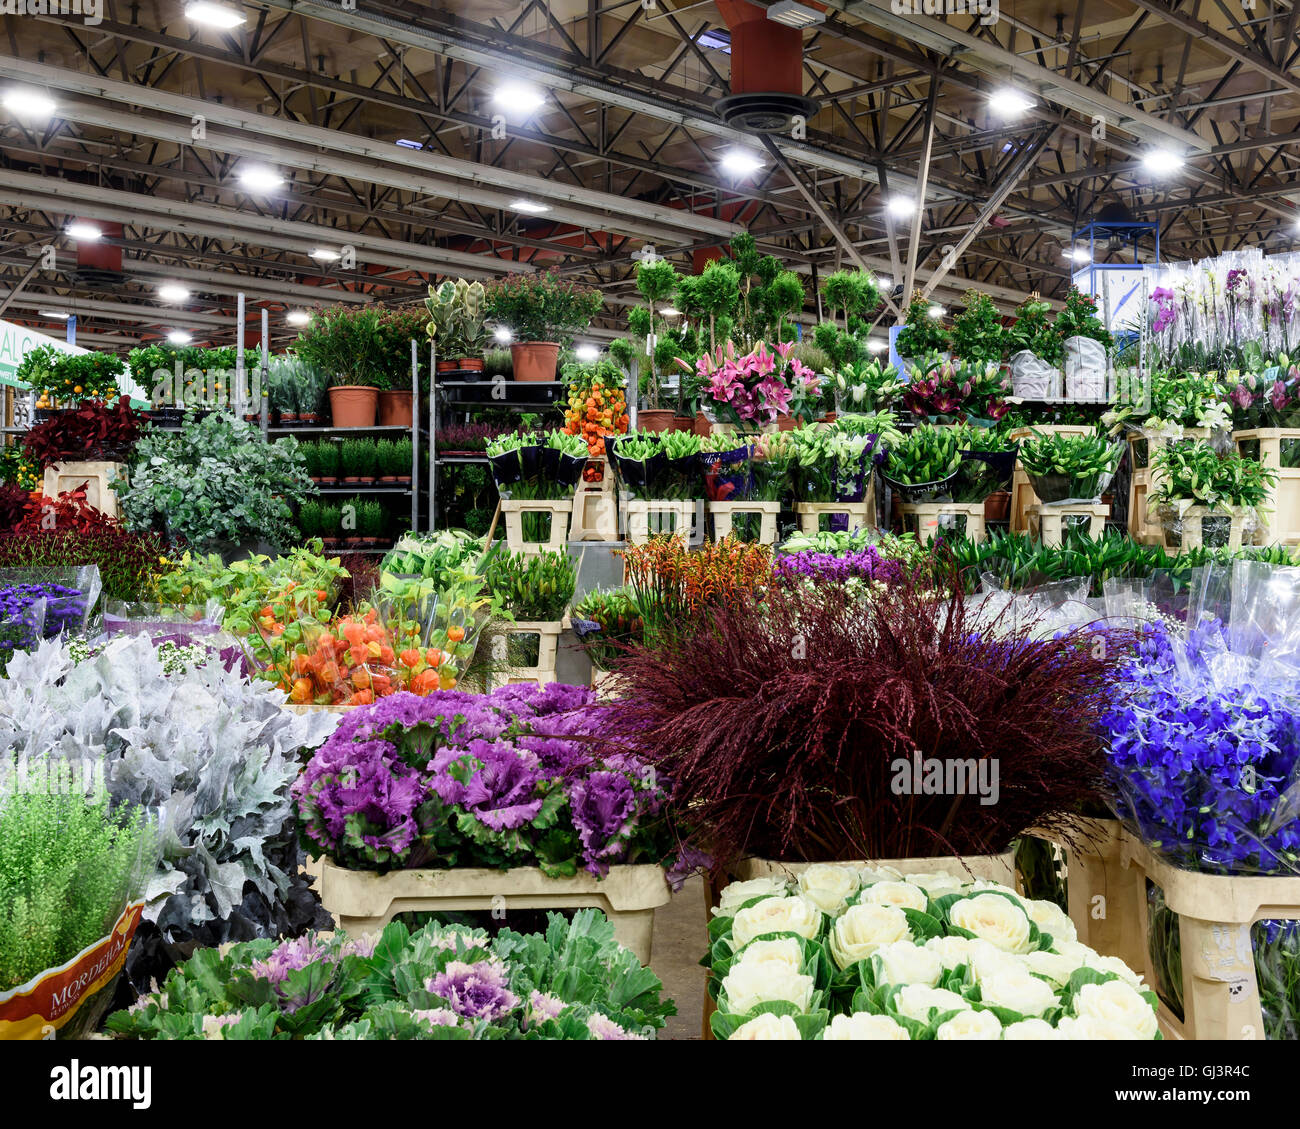 Plants in the flower market. New Covent Garden Market, London, United Kingdom. Architect: -, 1974. Stock Photo